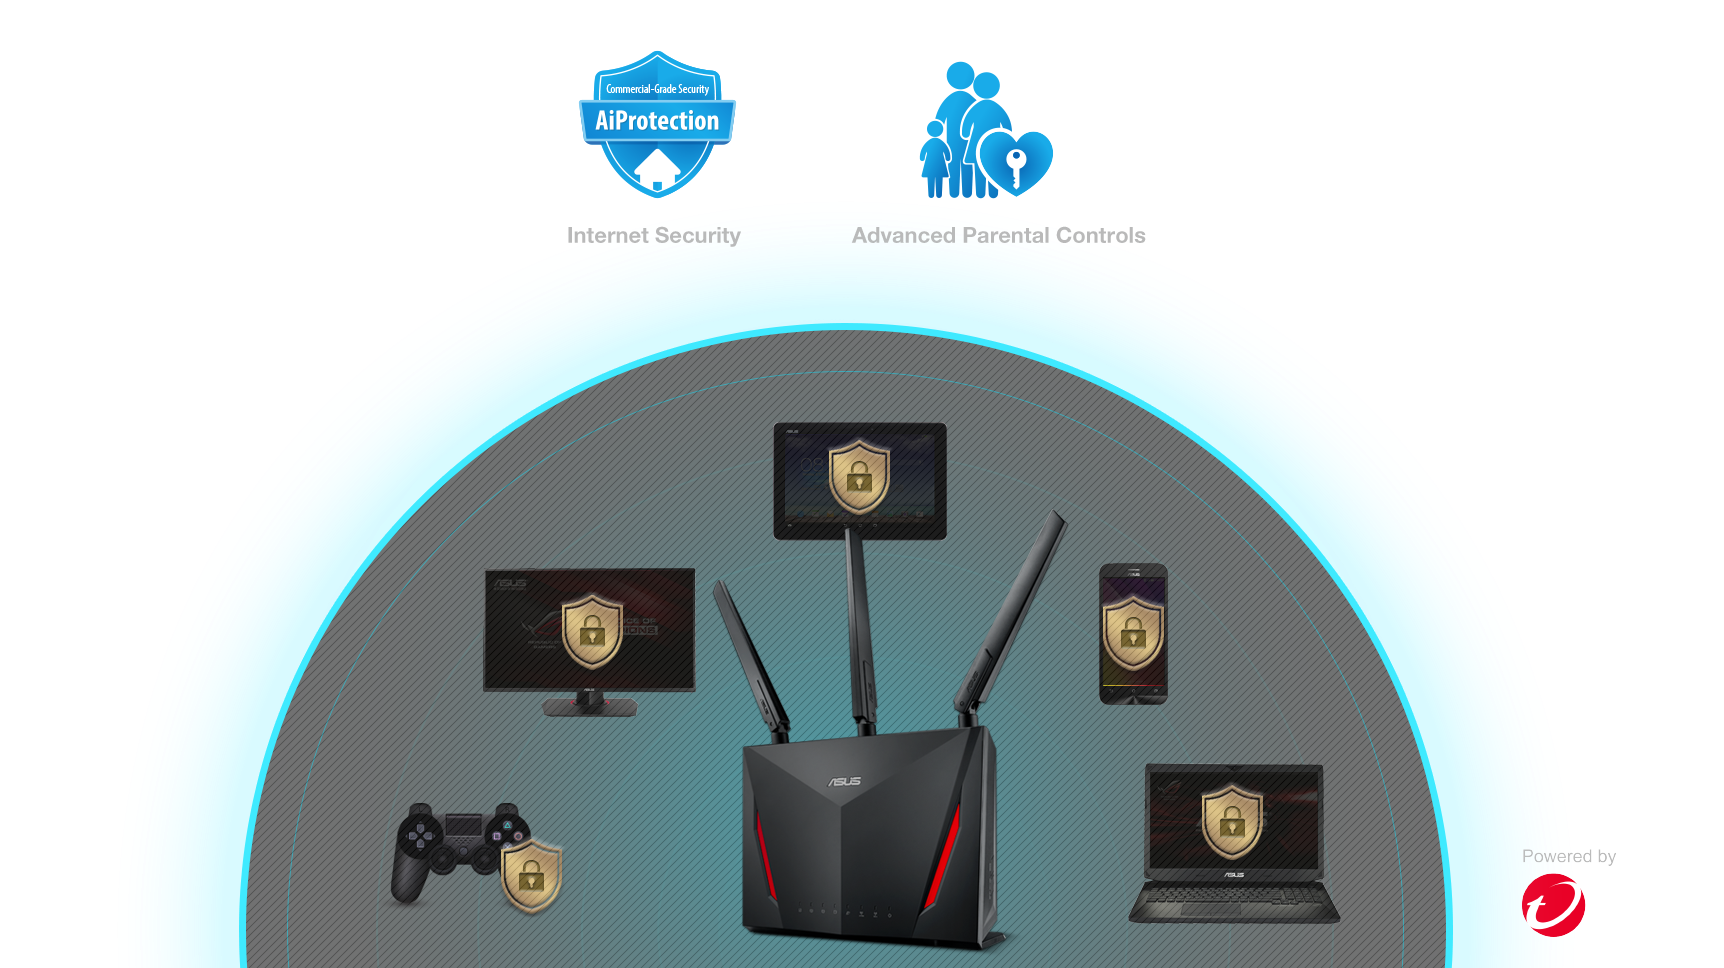 AiProtection Pro protects all connected devices within your network. While Advanced Parental Controls helps you to protect your family even more.